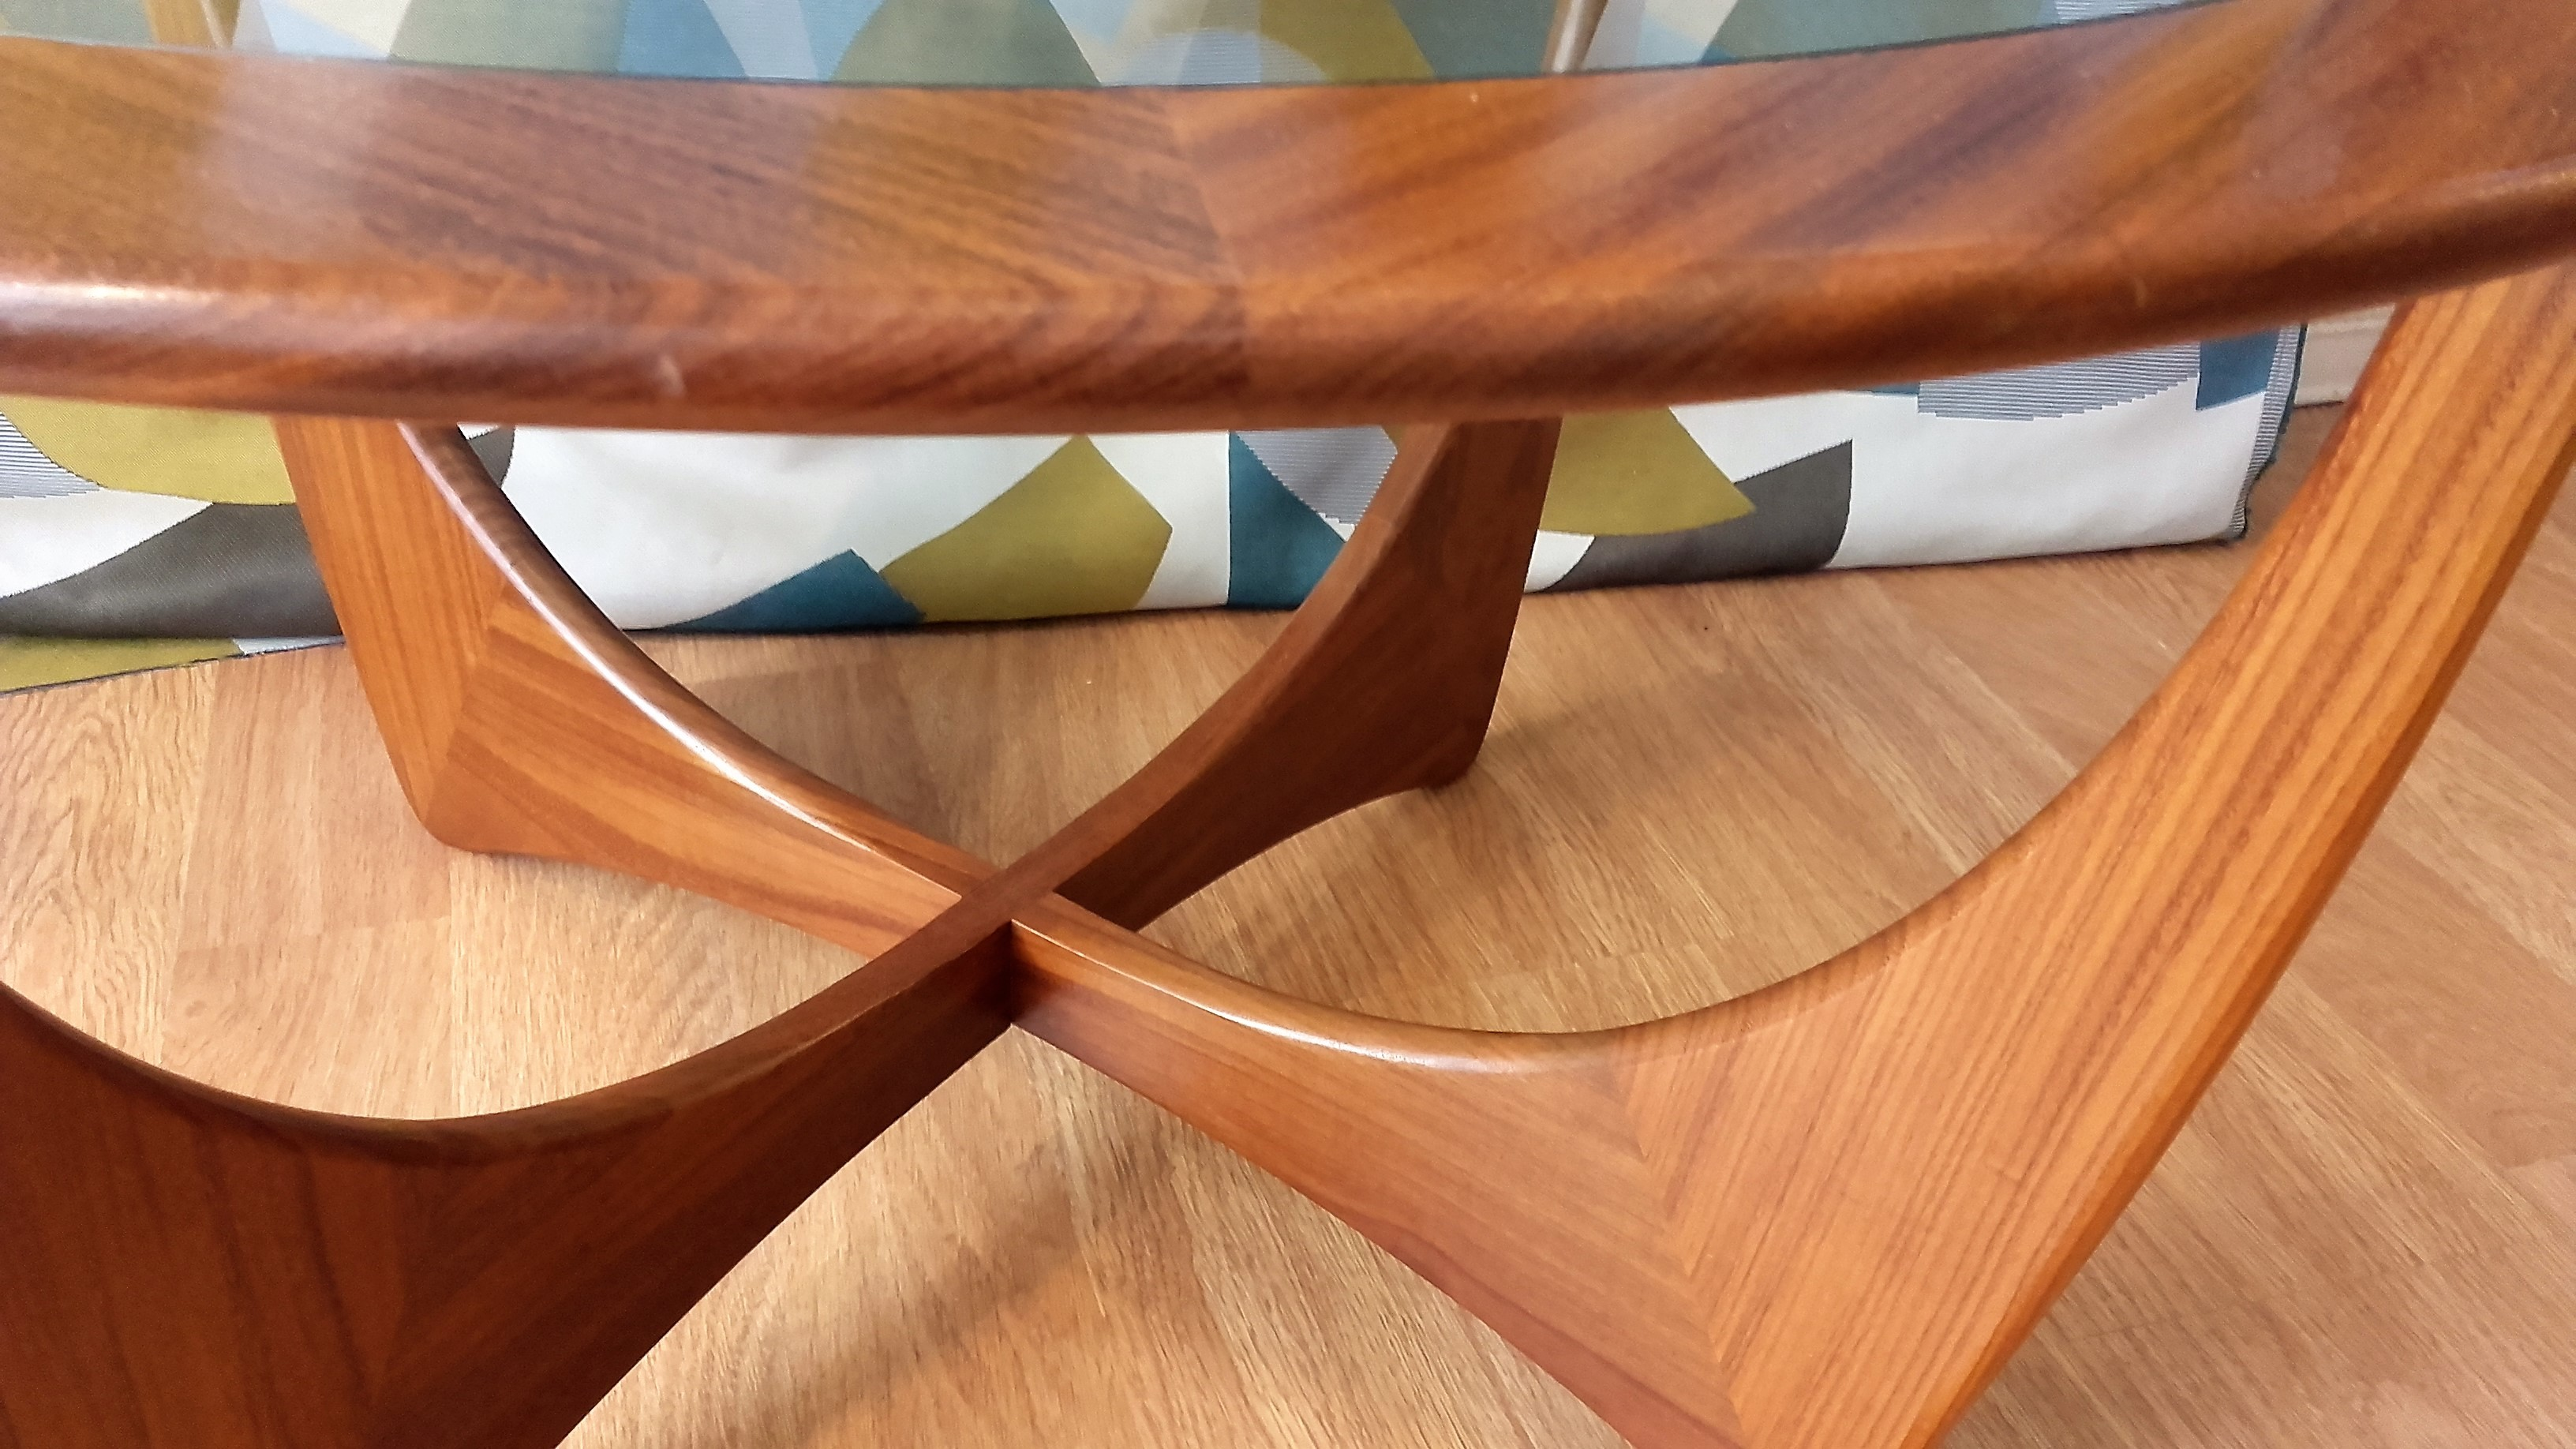 Round solid teak Astro coffee table by V Wilkins for G PLAN